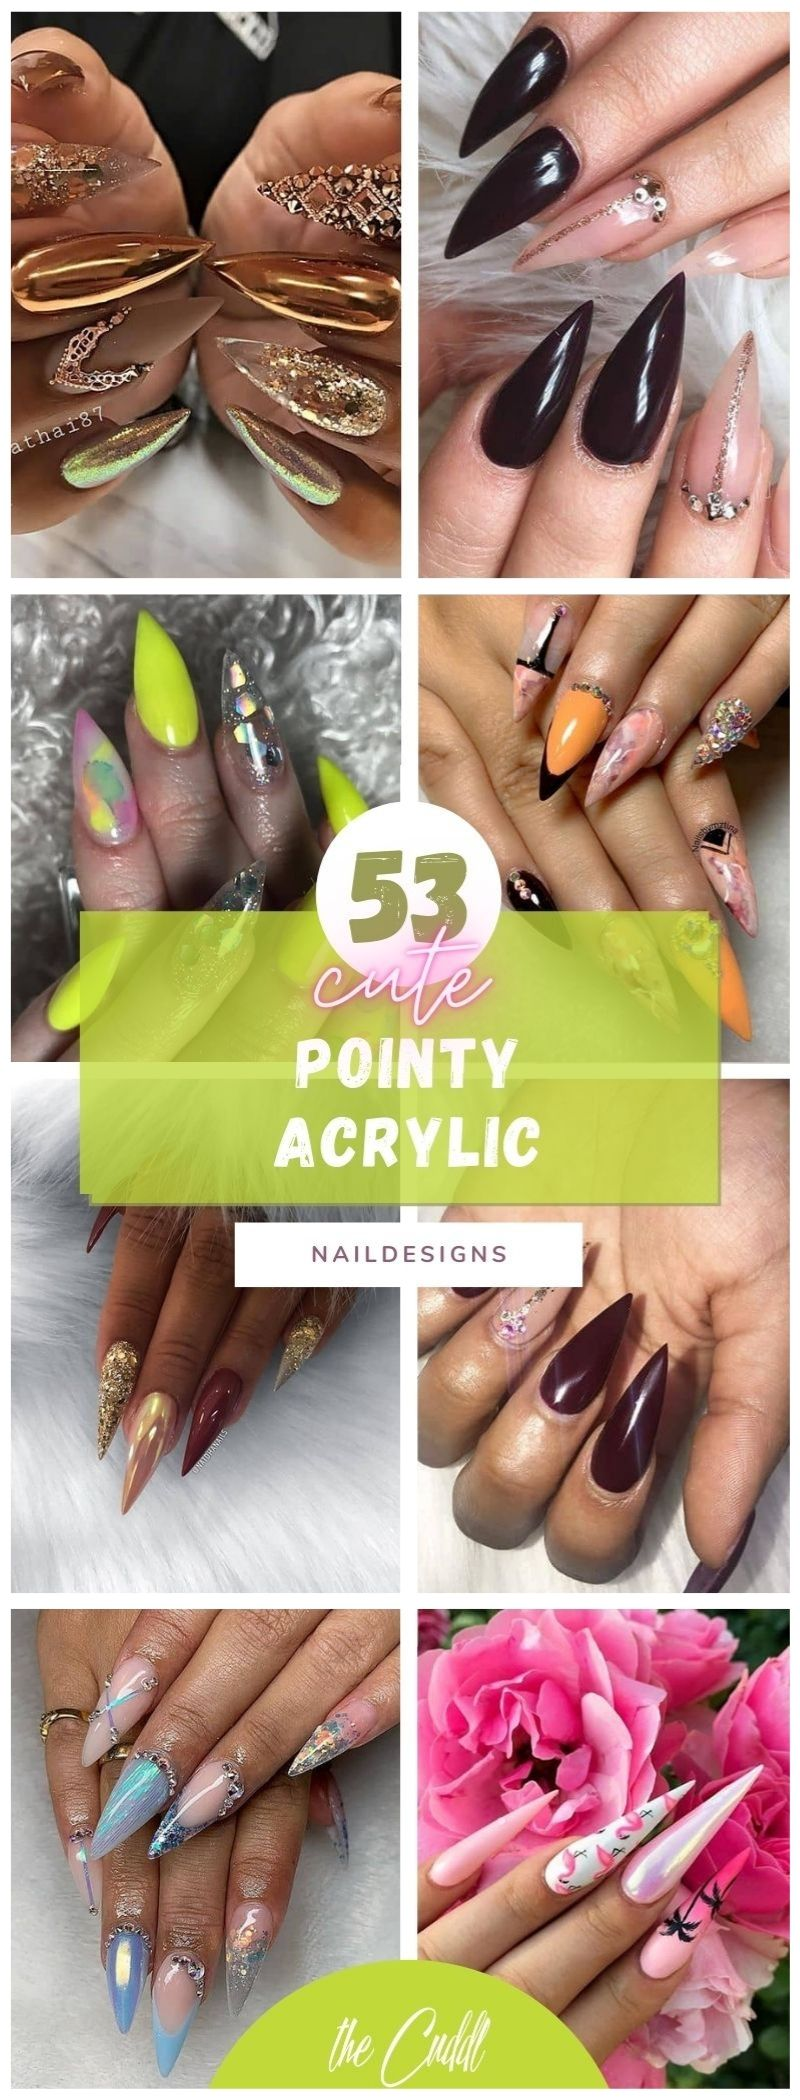 53 Simple Pointy Acrylic Nails to Feel Like the Queen You Are